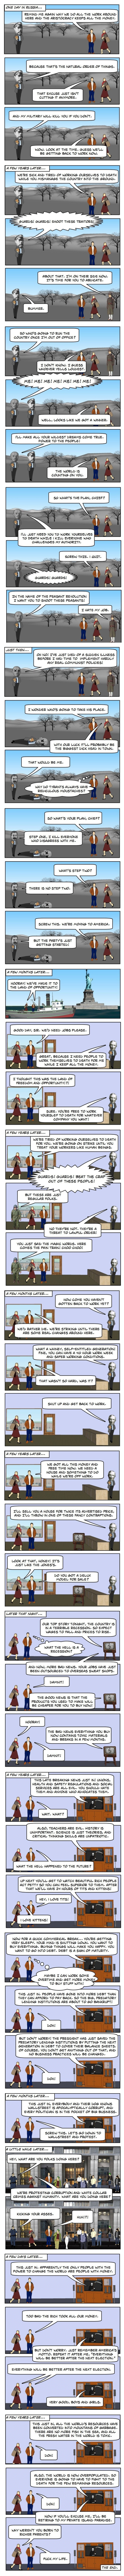 (Comic) A Brief History Of The Working Class